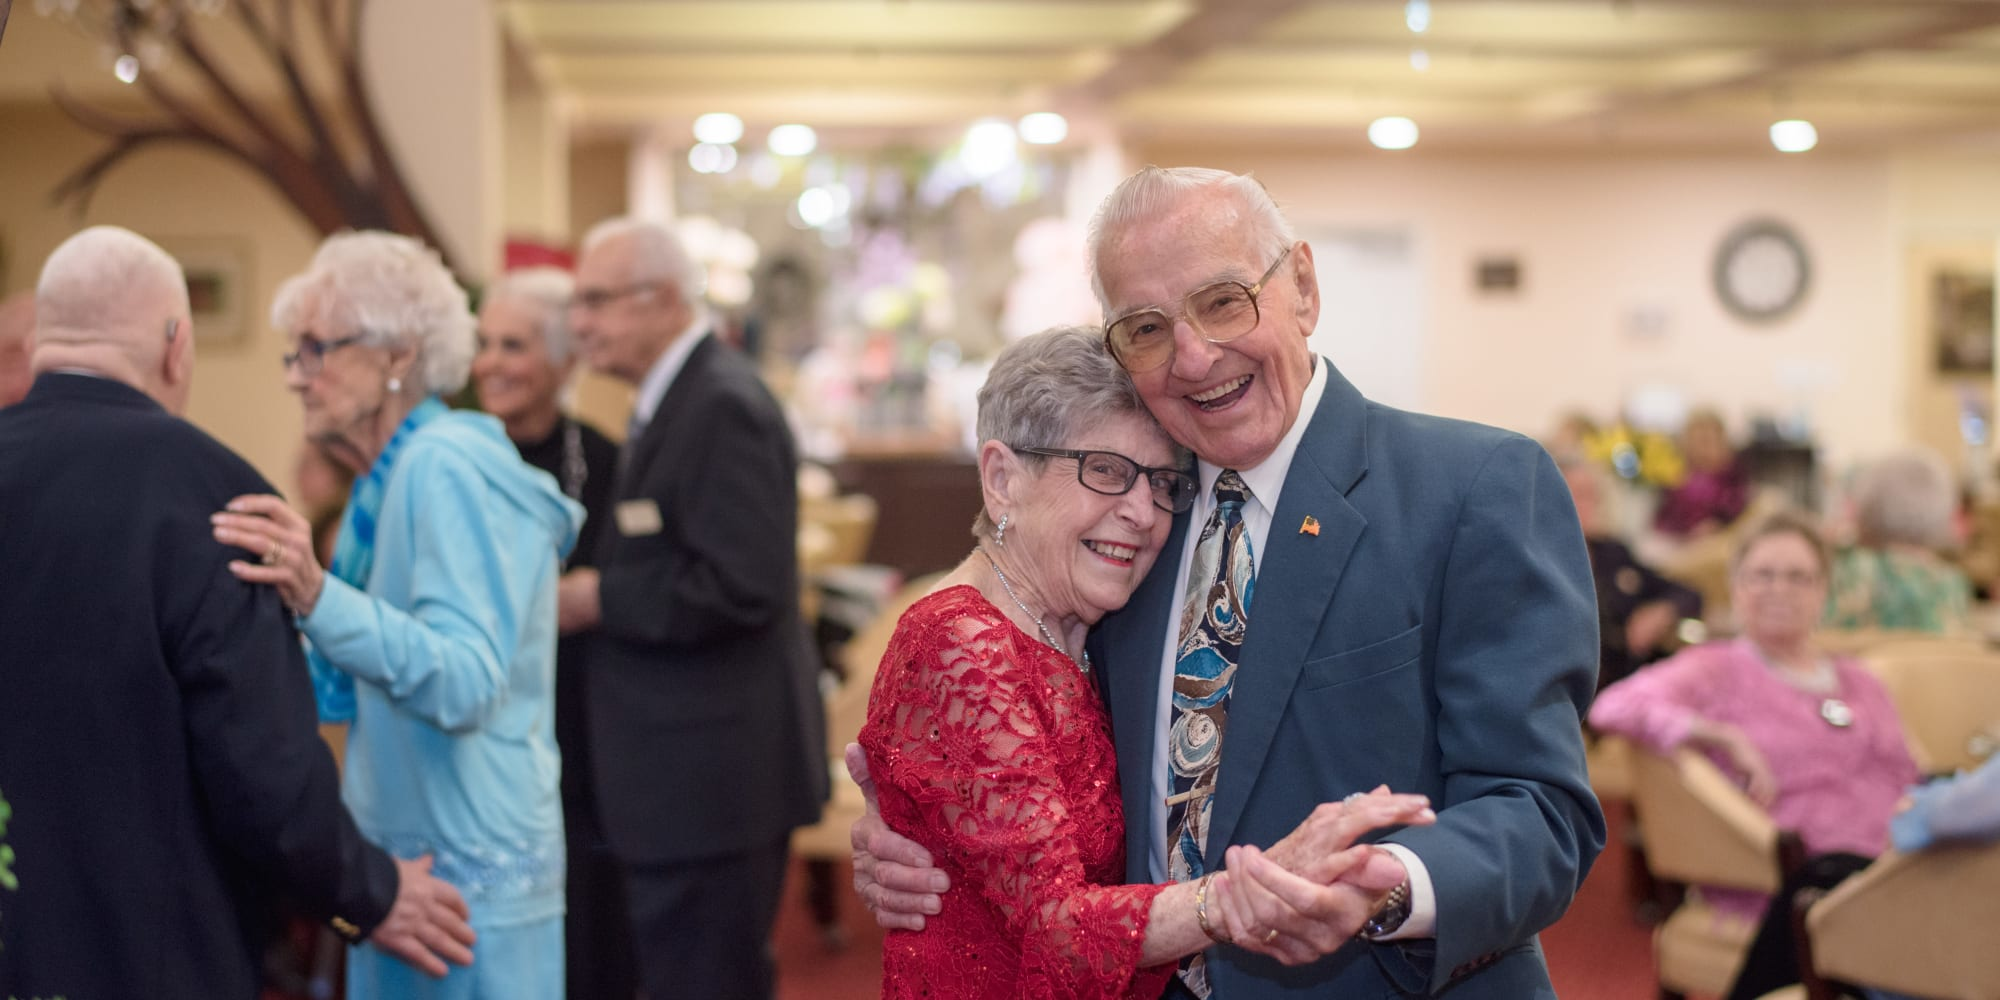 A couple dancing together at Ashton Gardens Gracious Retirement Living in Portland, Maine